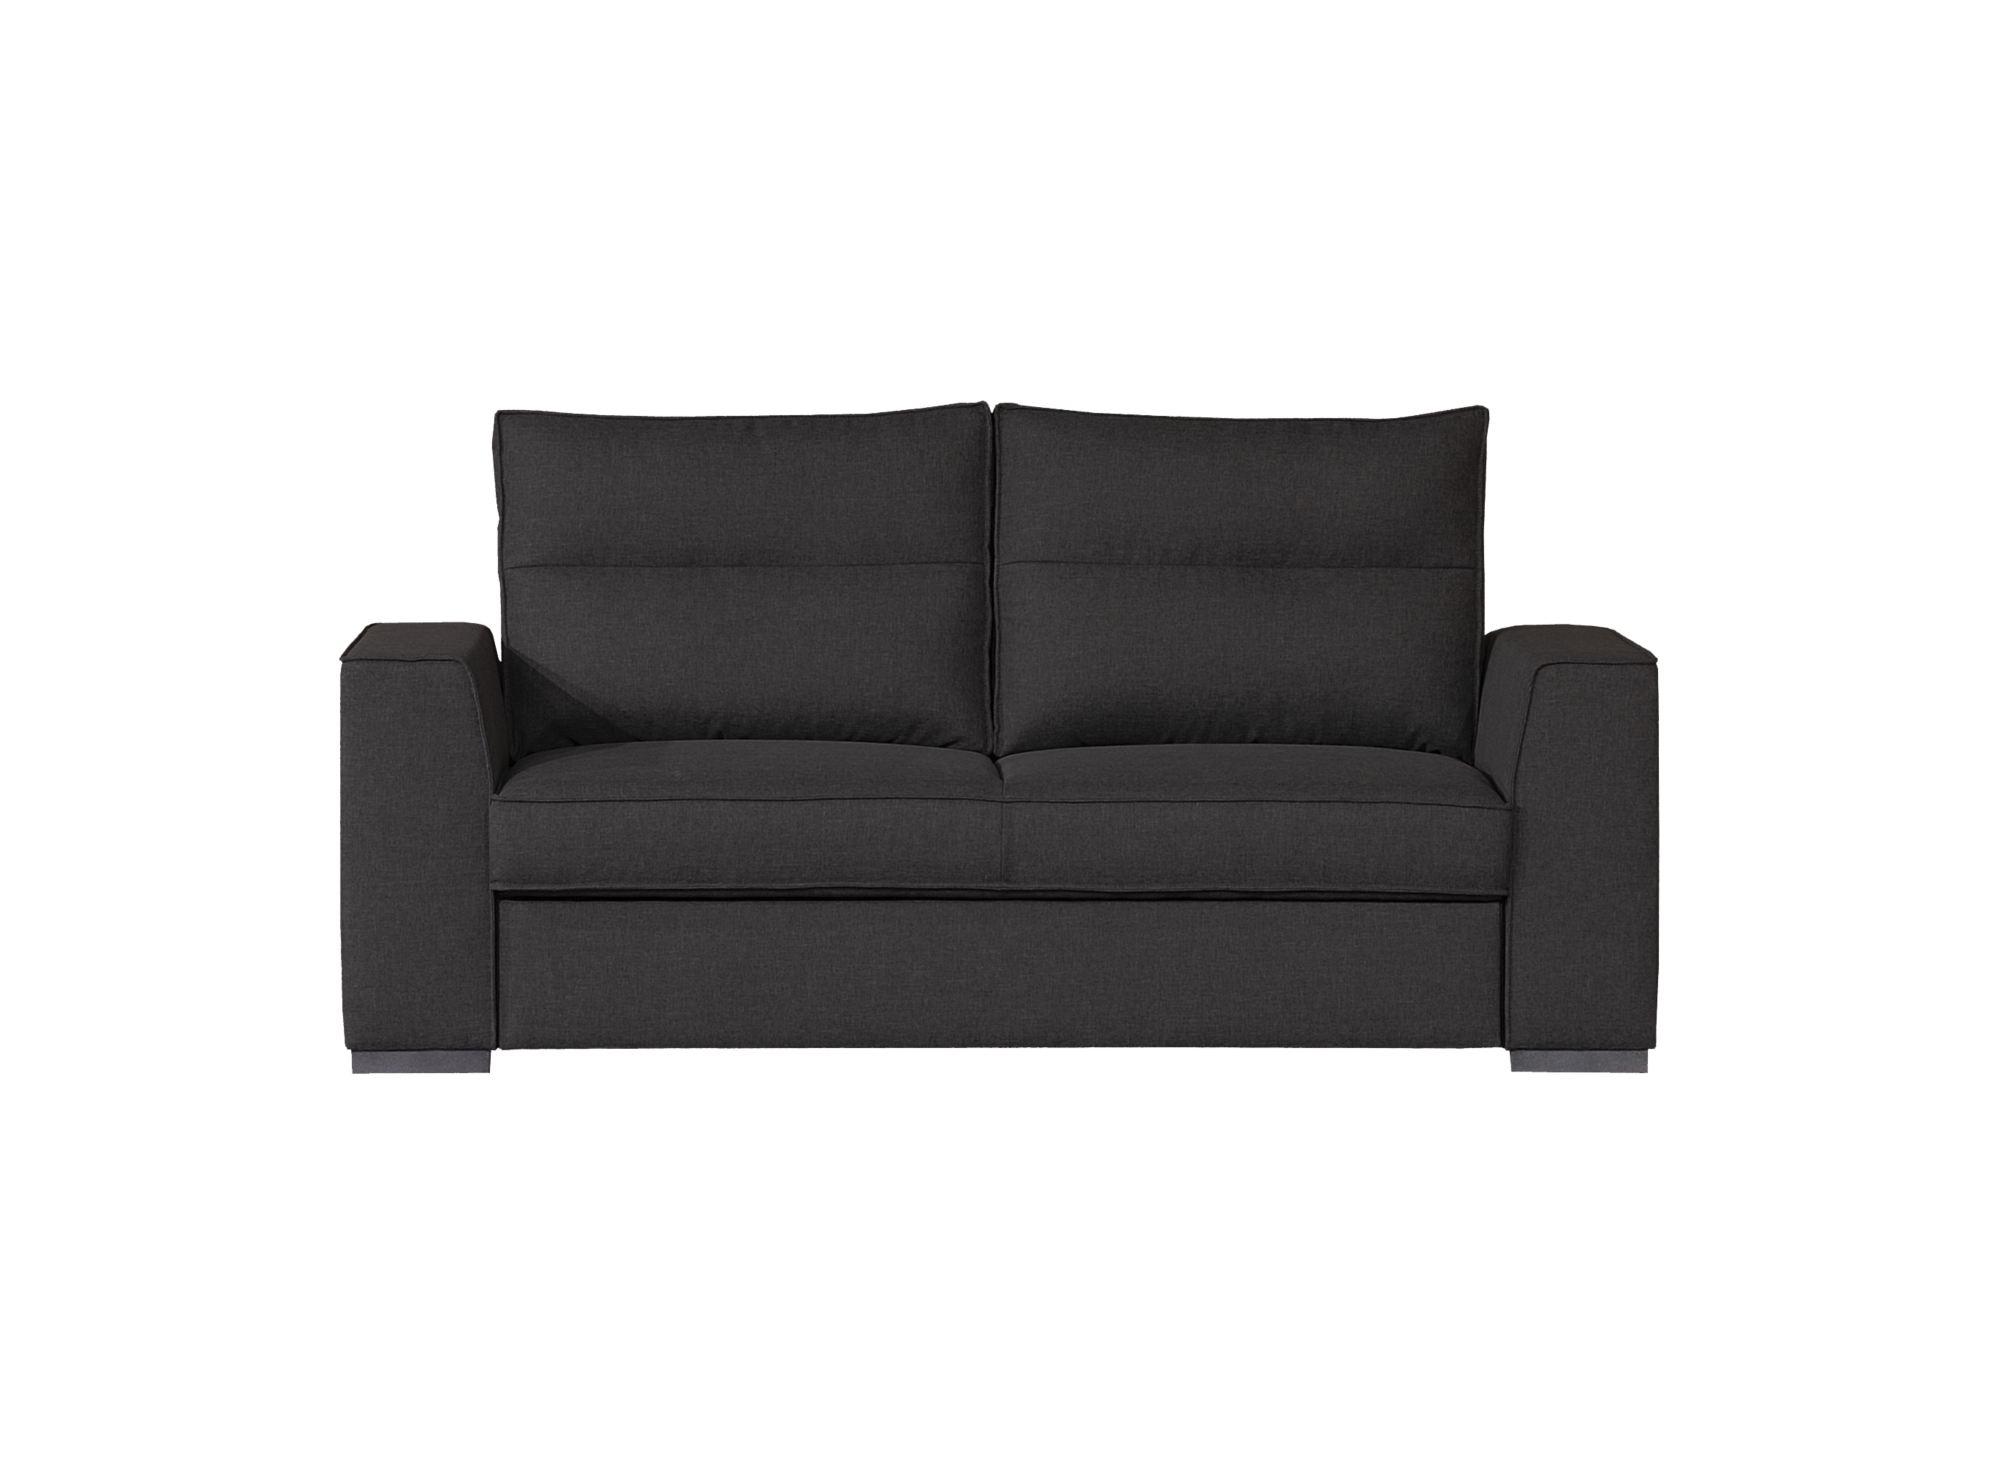 Canape convertible 3 places tissu gris anthracite - Canapé | Fly